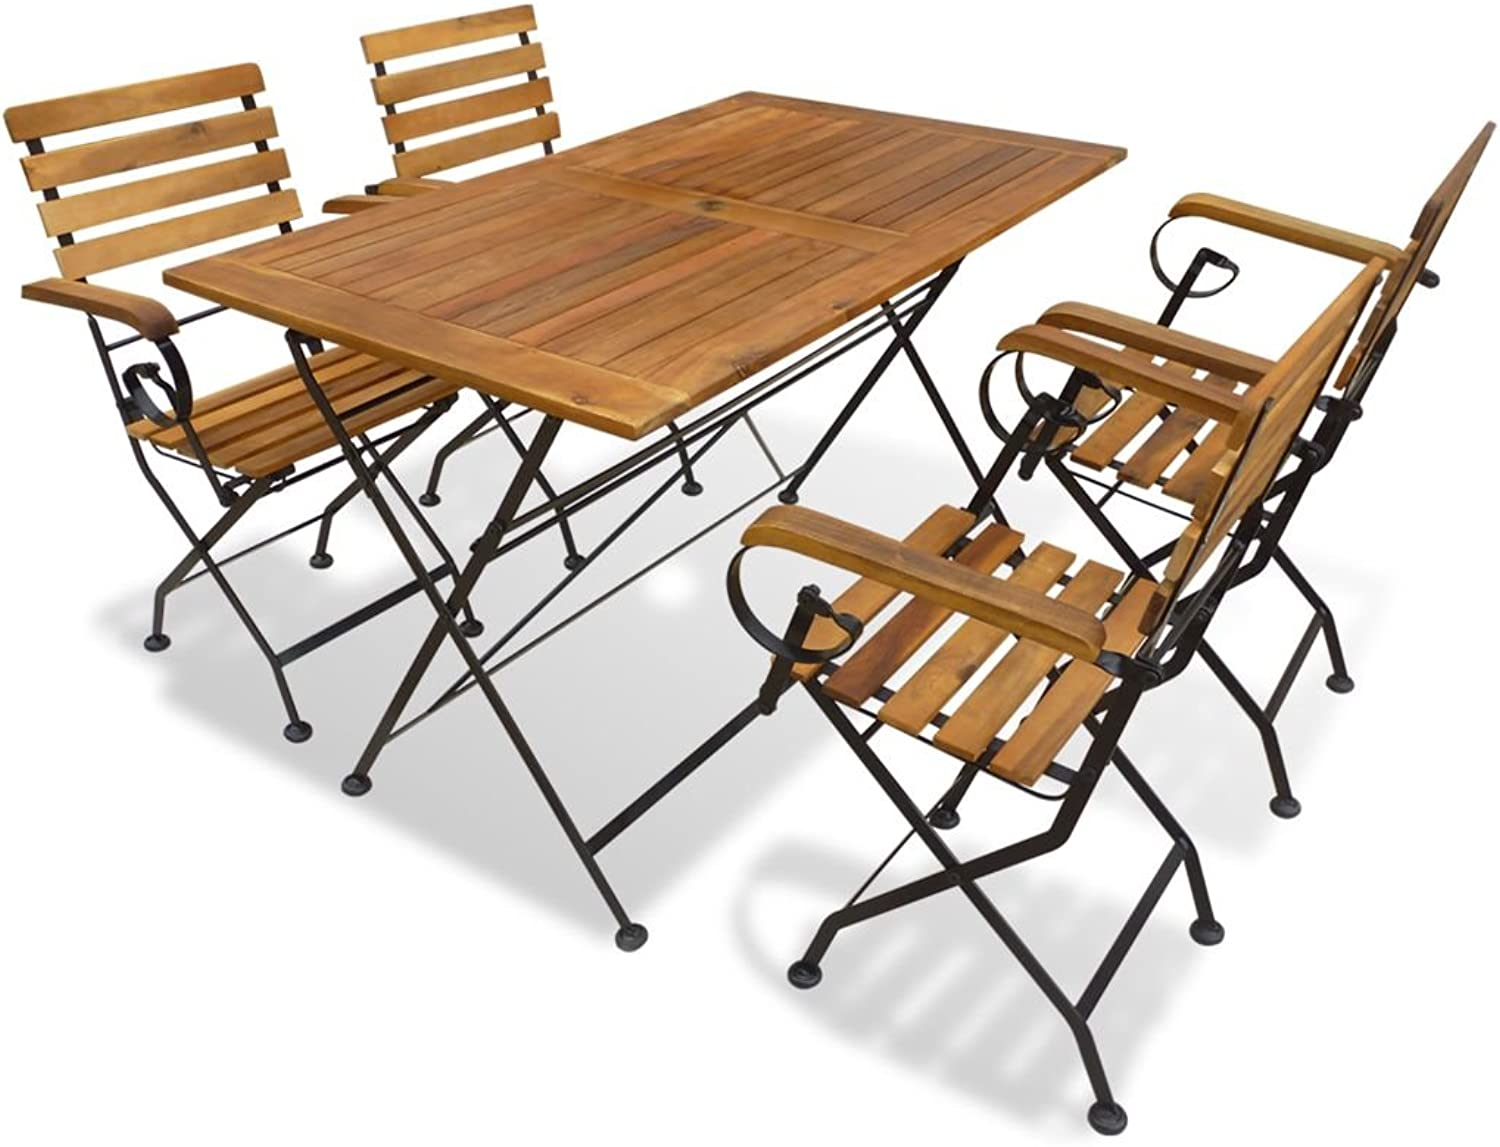 VidaXL Outdoor Dining Set 5 Piece Acacia Wood Patio Foldable Table Chairs